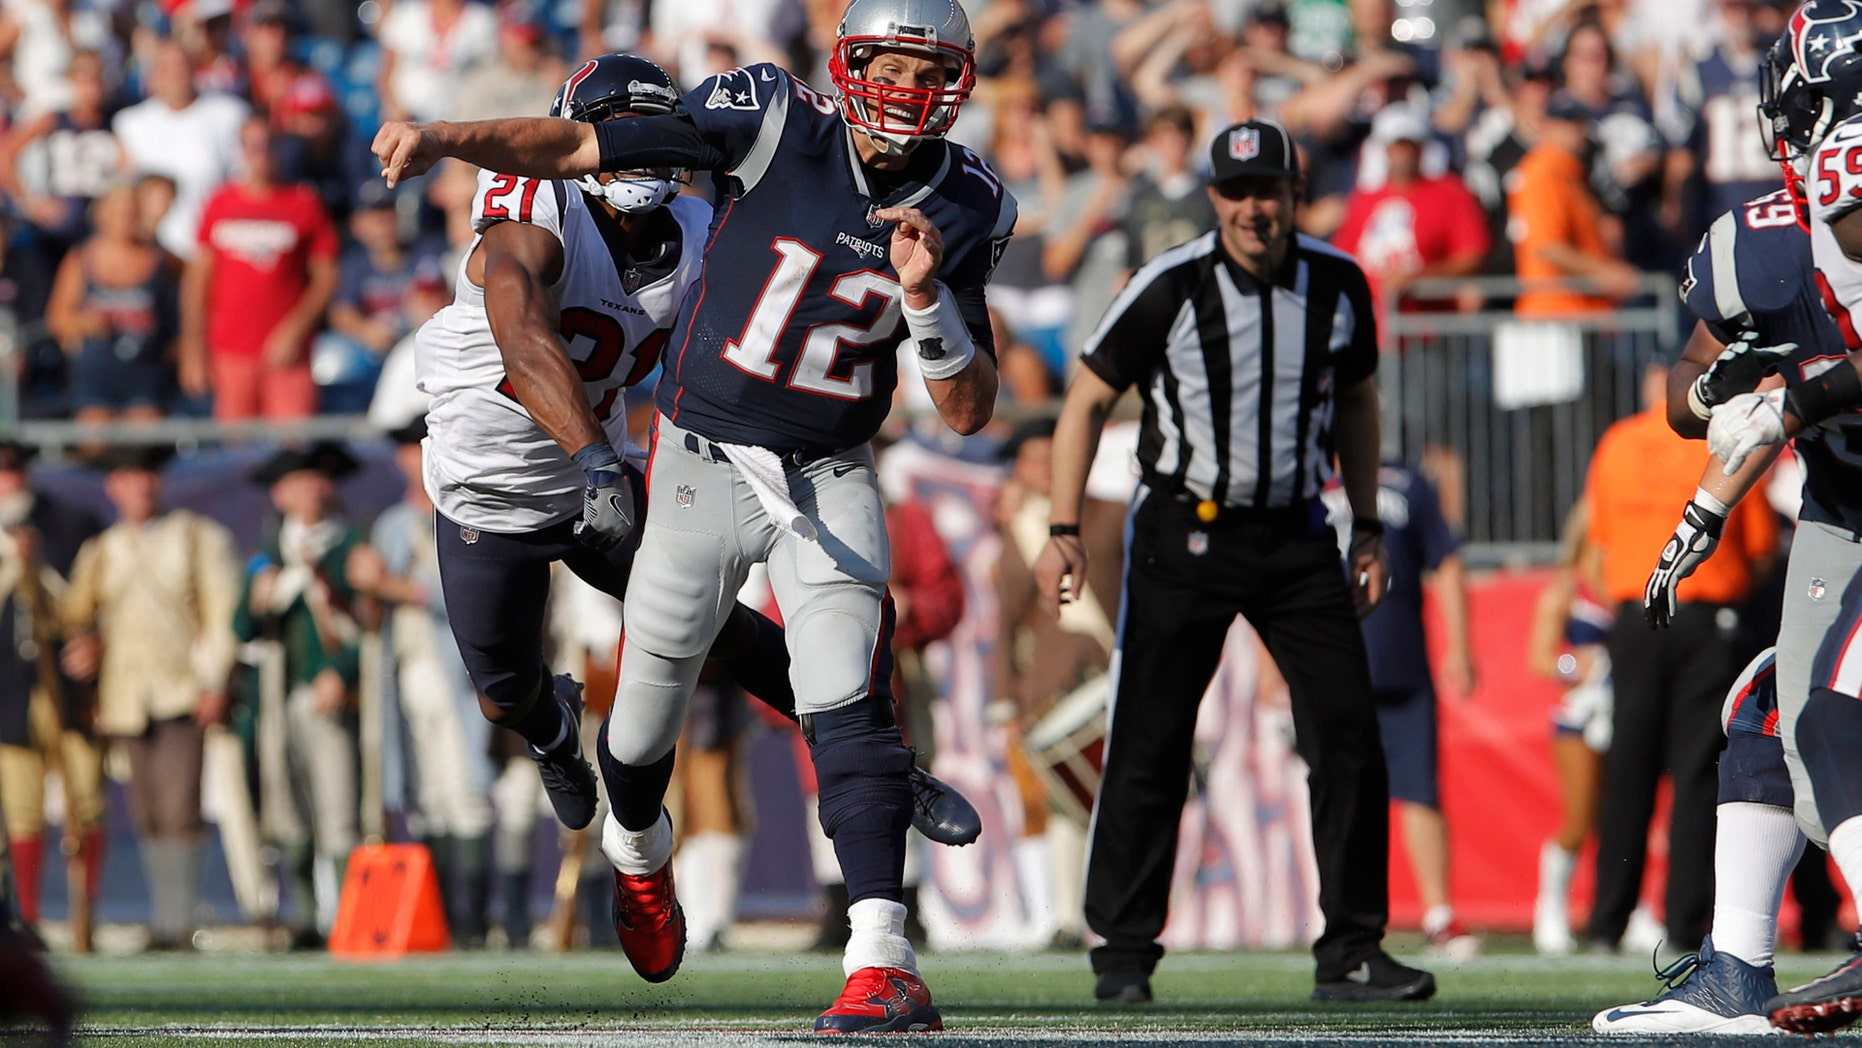 Sep 24, 2017; Foxborough, MA, USA; Houston Texans defensive back Marcus Gilchrist (21) hits the arm of New England Patriots quarterback Tom Brady (12) in the second half at Gillette Stadium. Mandatory Credit: David Butler II-USA TODAY Sports - 10304422